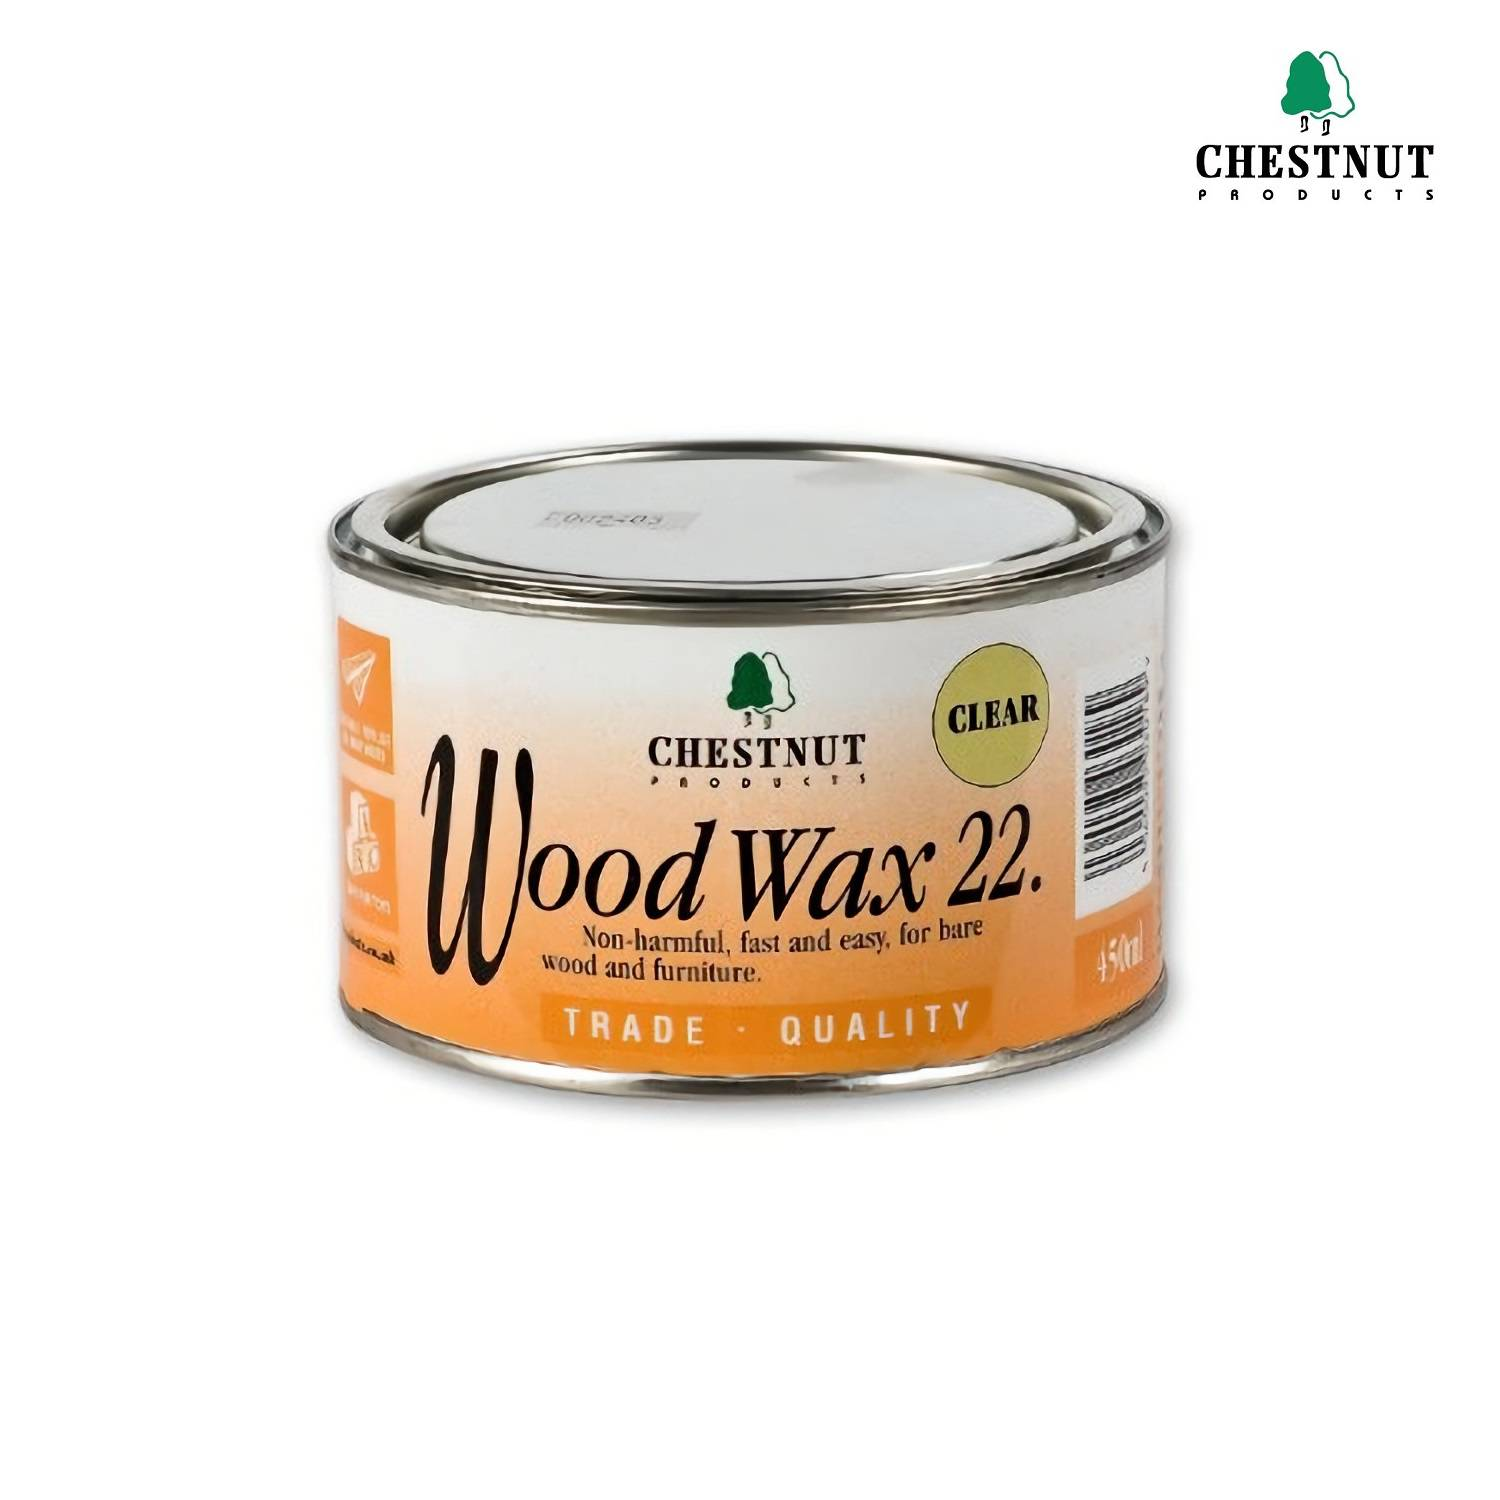 woodwax_22_chestnut